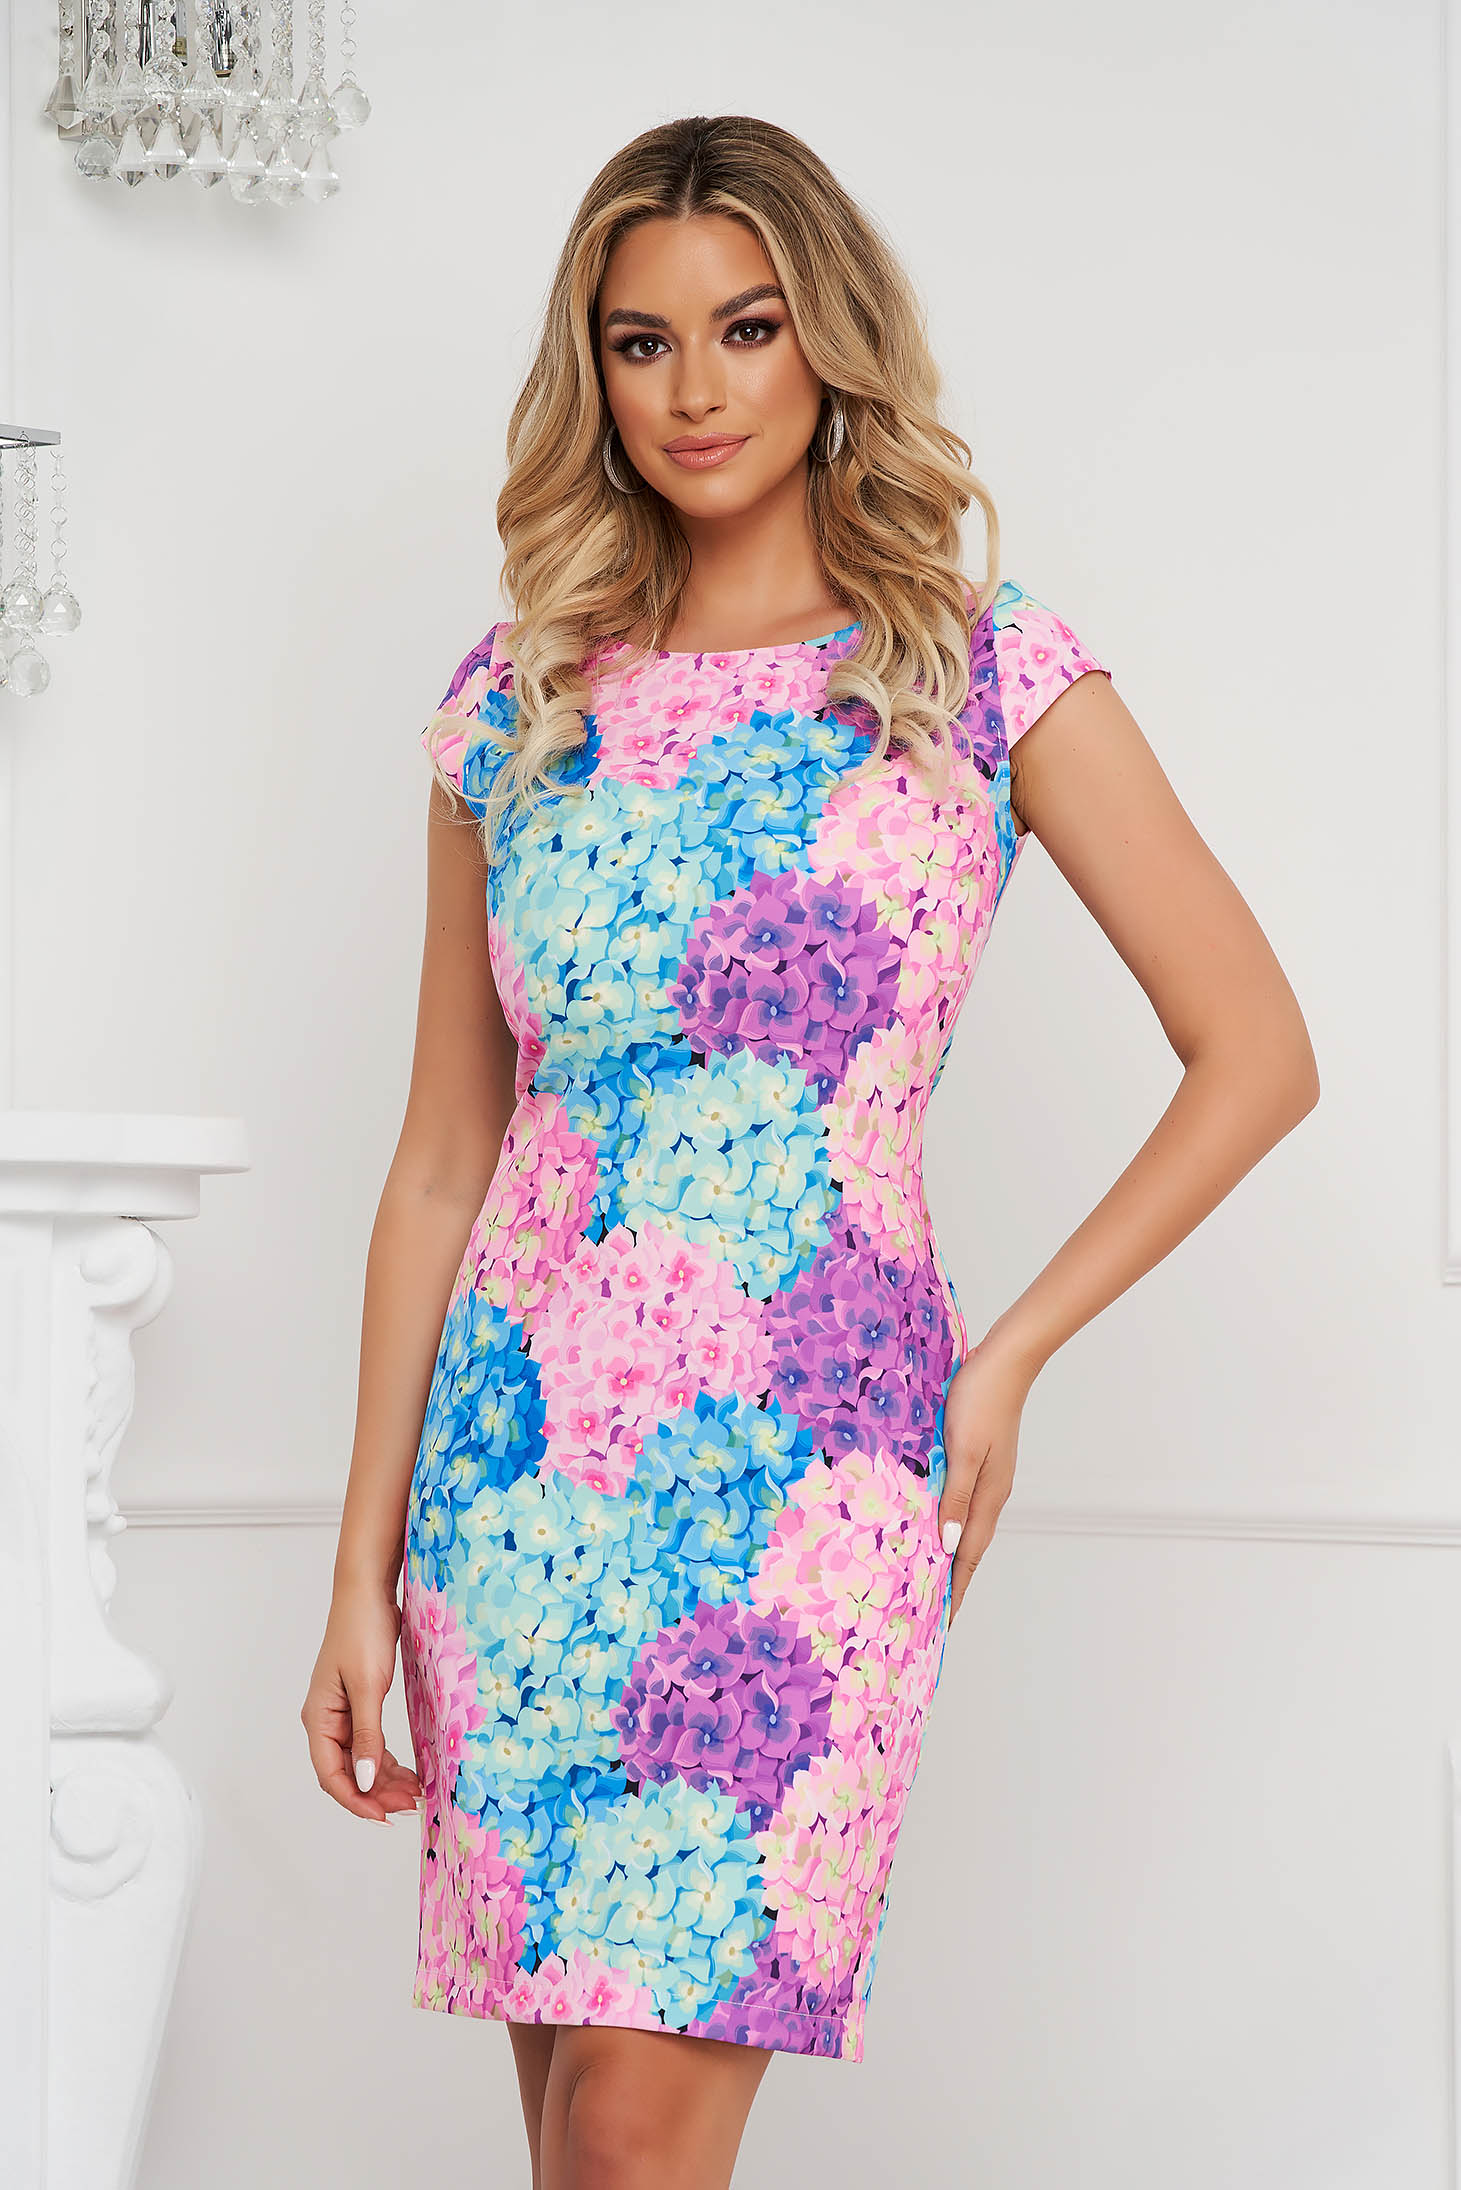 StarShinerS dress office with floral print straight short cut non-flexible thin fabric